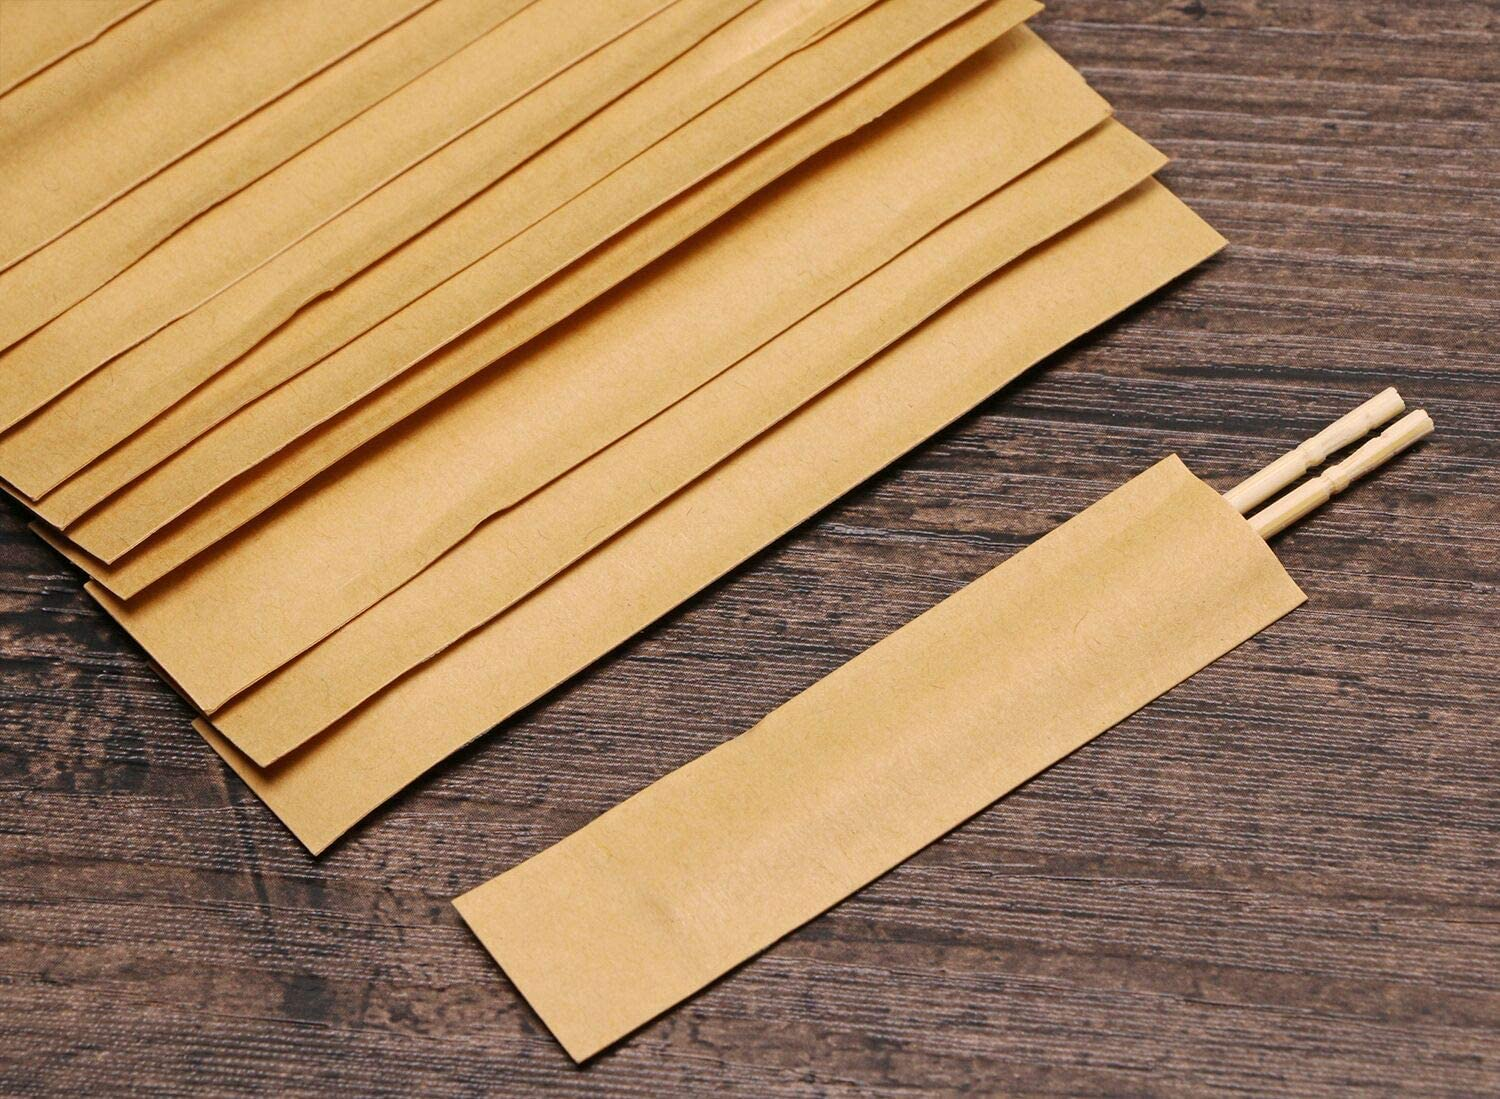 ONLKXY 200 Pairs(400 Pcs)Diner-Grade Toothpick Natural Bamboo Dental For Restaurant Hotel Tableware Decor Tools